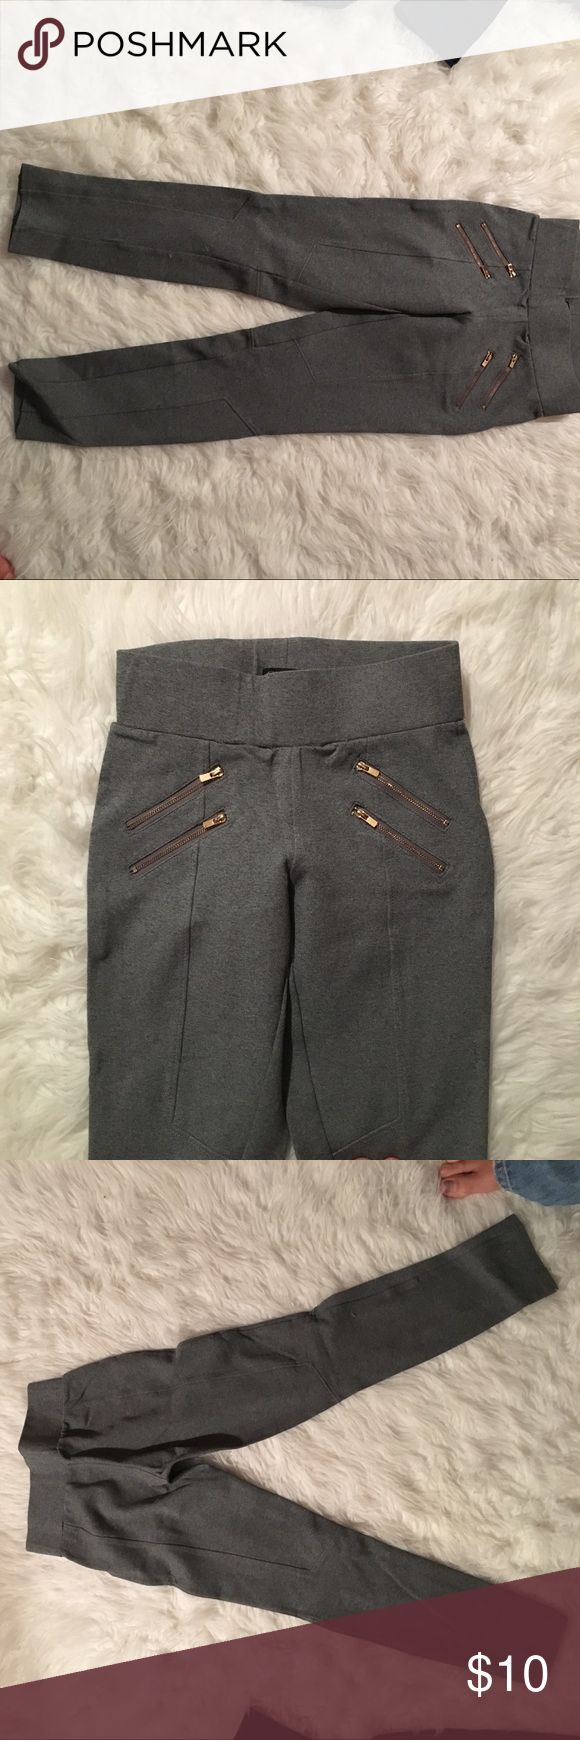 Riding pants. Gray gold zippers Fashion horse riding pants with gold zippers. Size small. Good condition. Always open to offers. They're very flattering. Pants Leggings